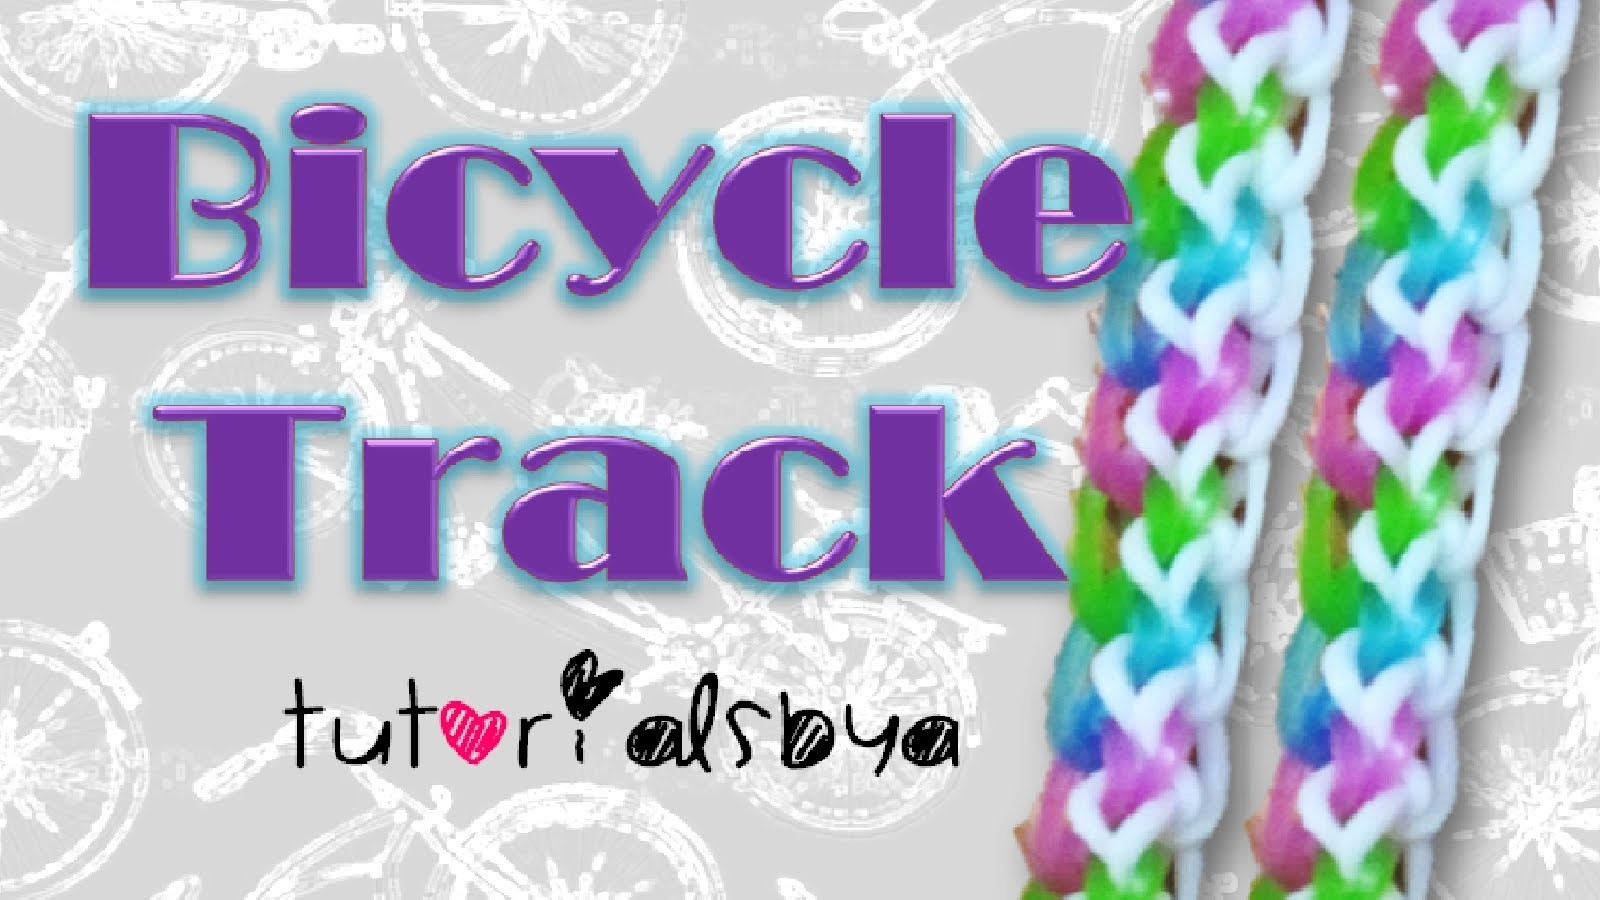 NEW Bicycle Track Rainbow Loom Bracelet Tutorial